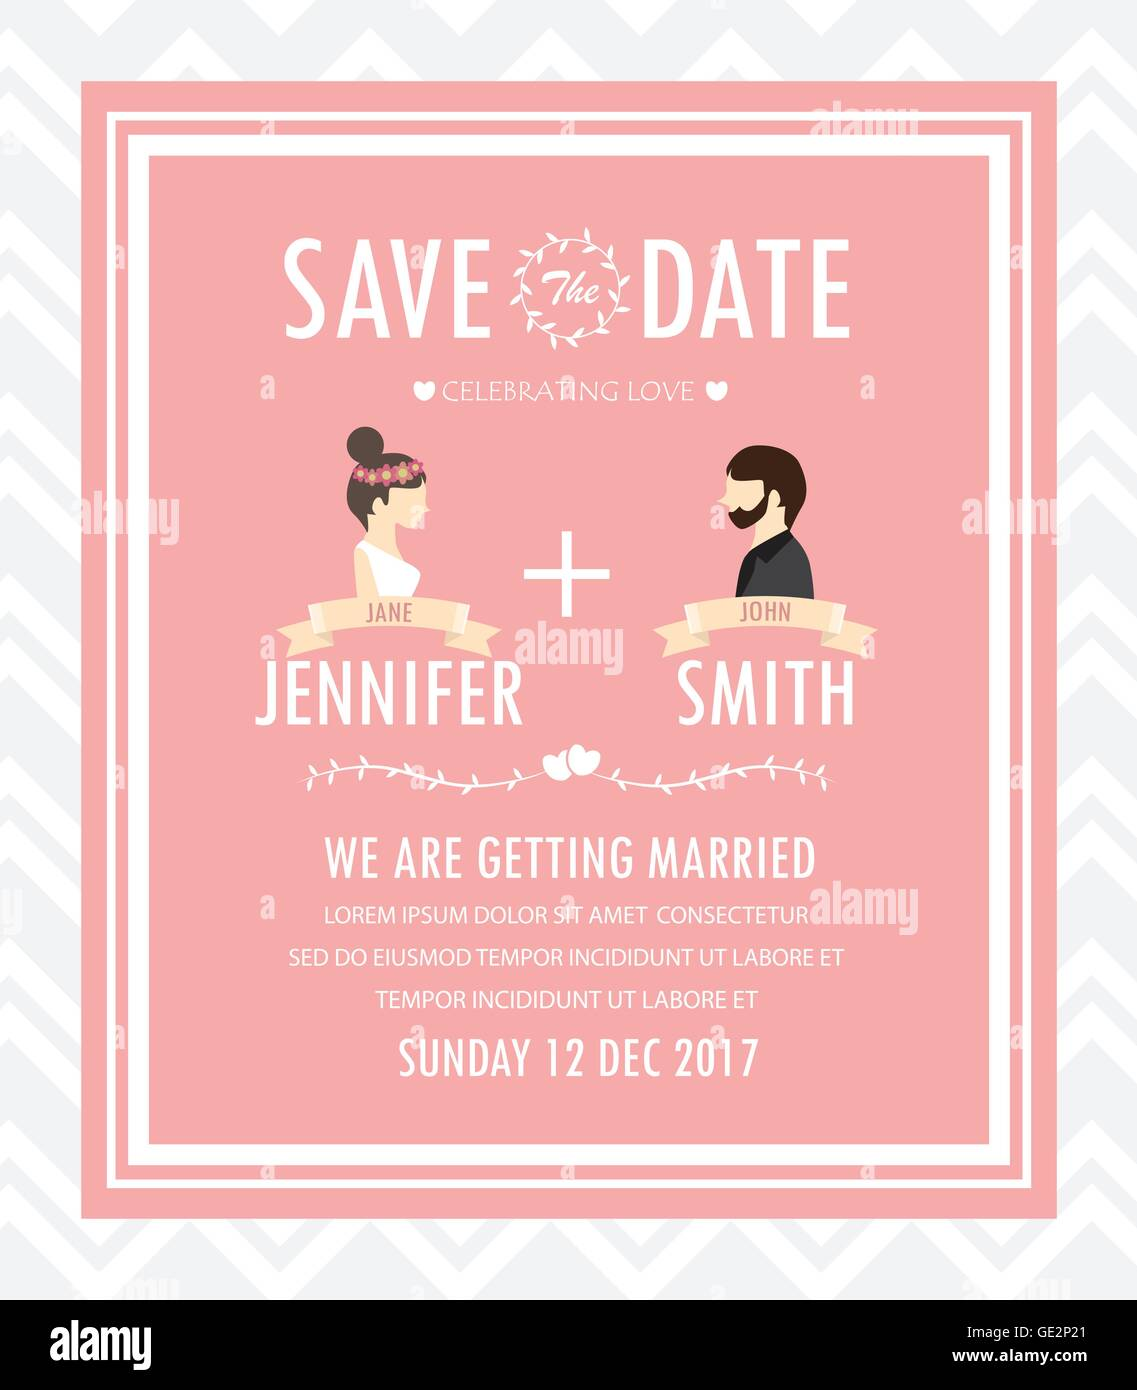 Wedding Invitation Card Bride And Groom Dress Concept Love And